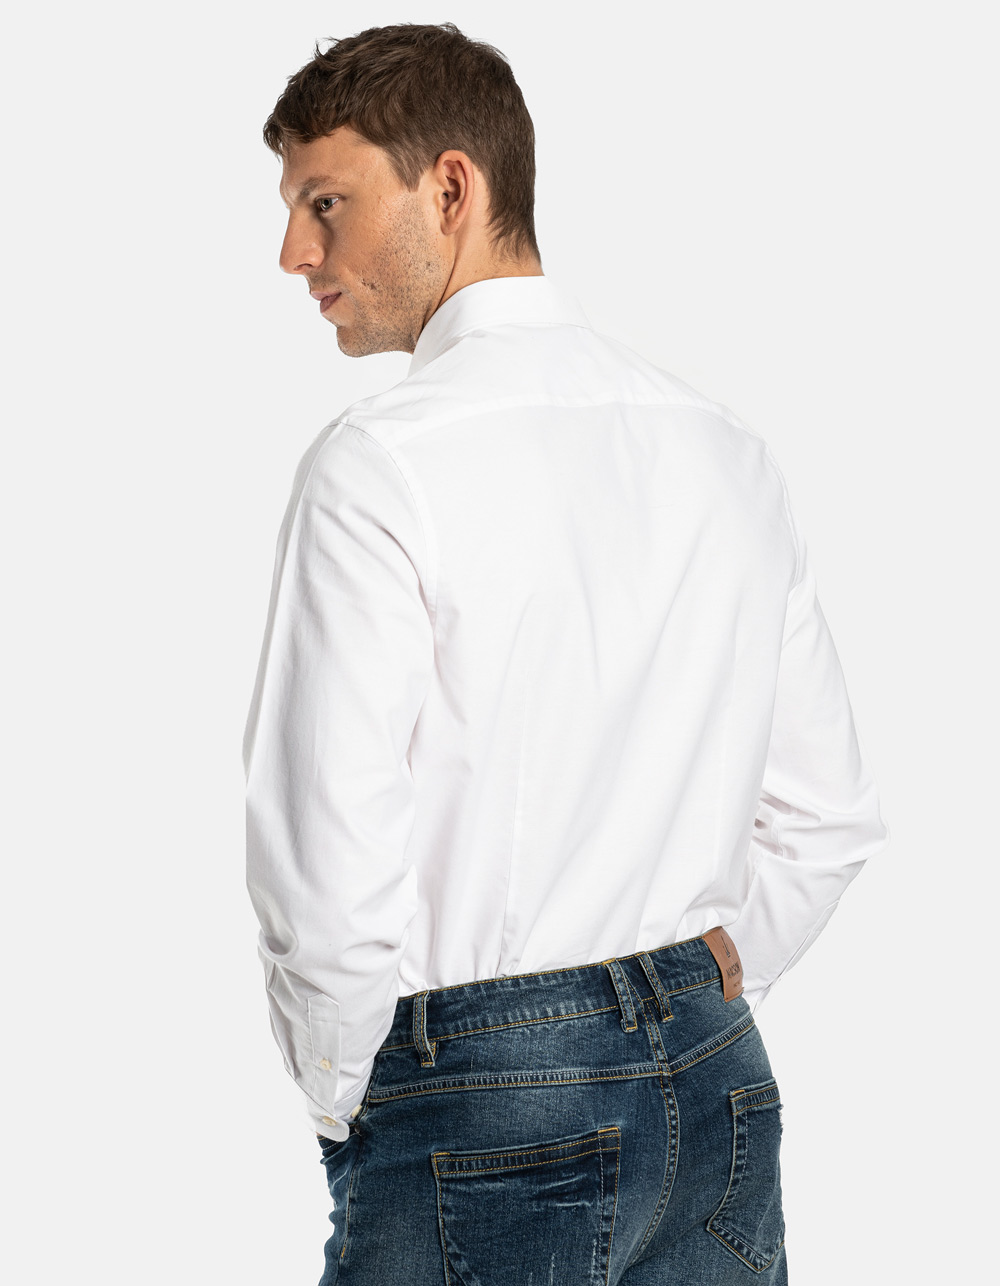 White plain Oxford shirt - Backside